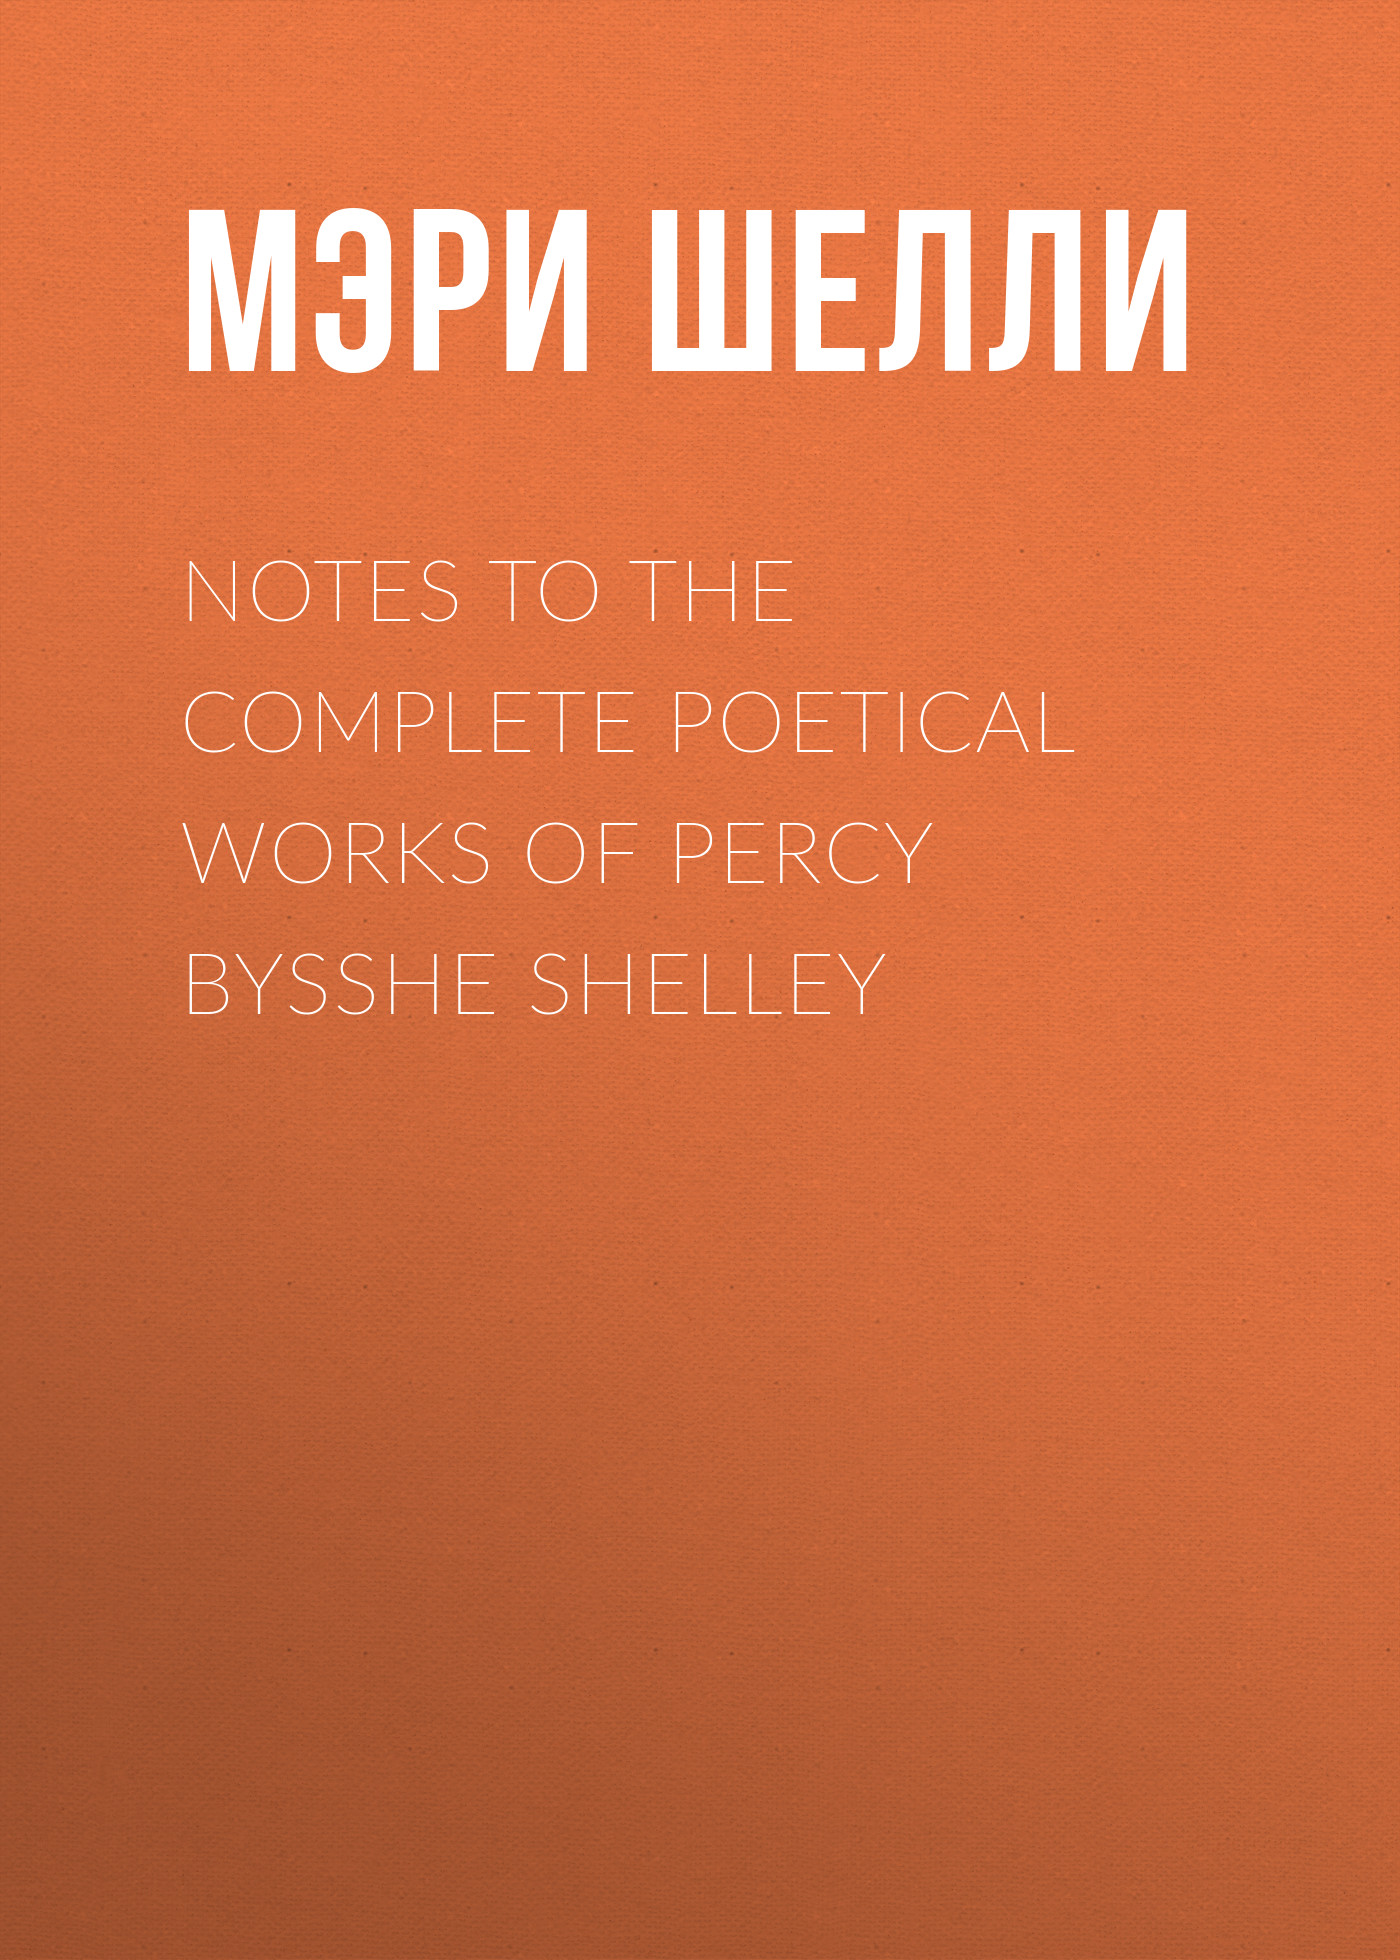 Мэри Шелли Notes to the Complete Poetical Works of Percy Bysshe Shelley